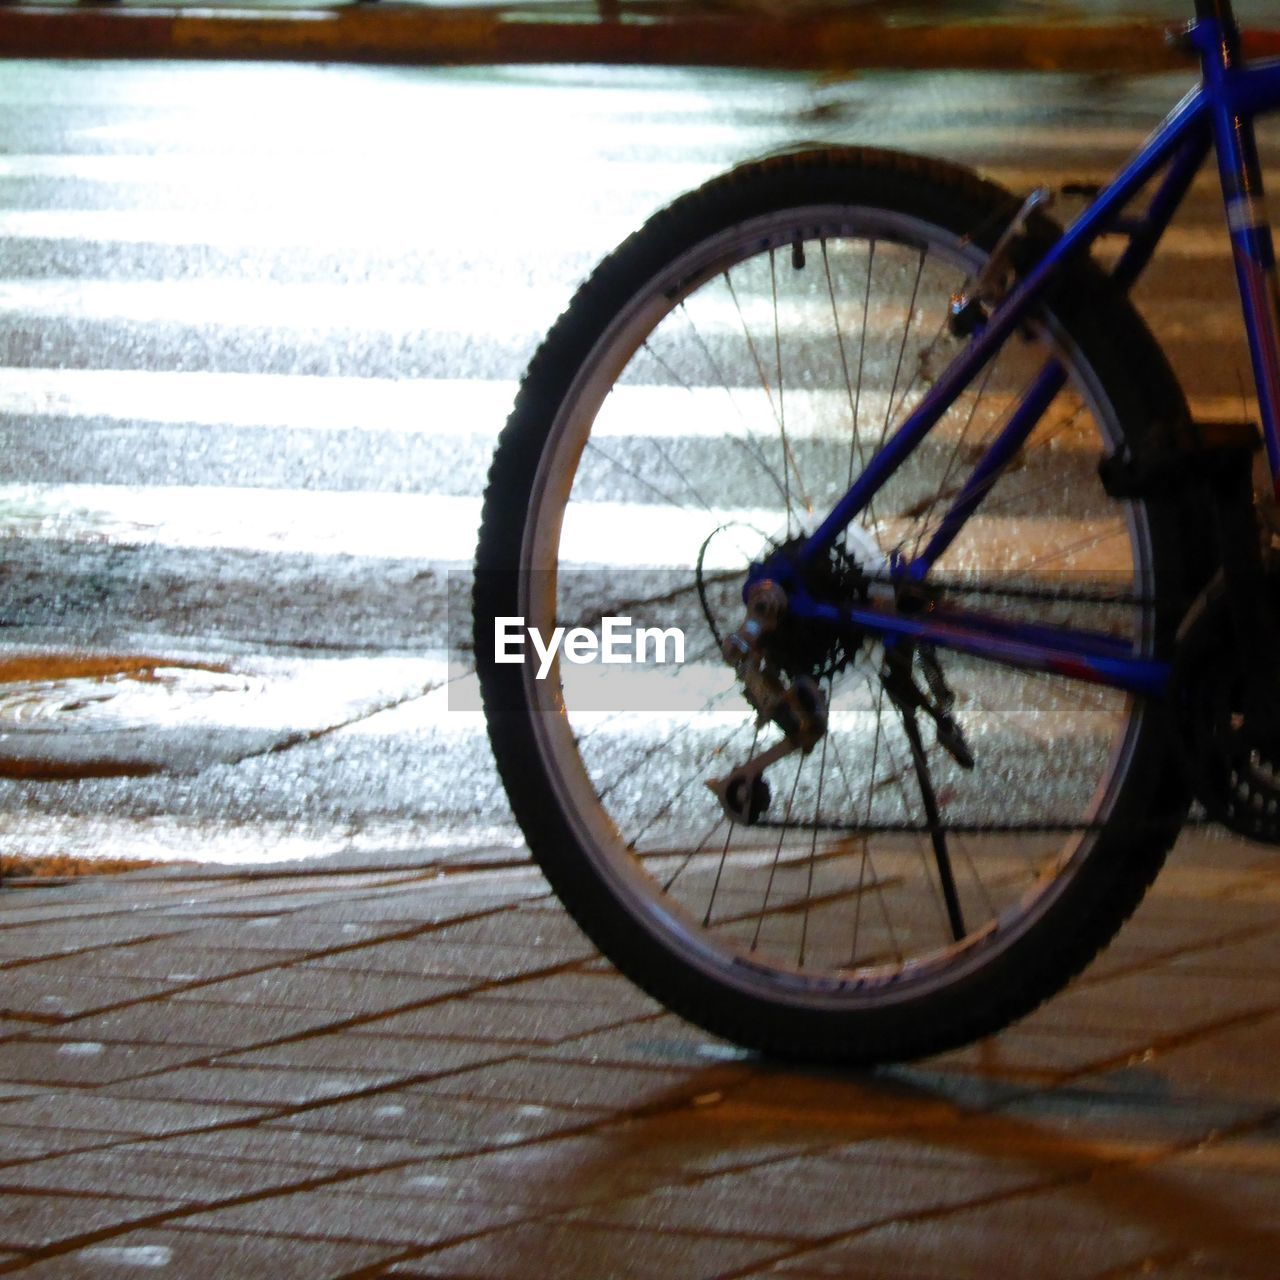 transportation, bicycle, land vehicle, mode of transport, wheel, day, no people, stationary, outdoors, spoke, close-up, tire